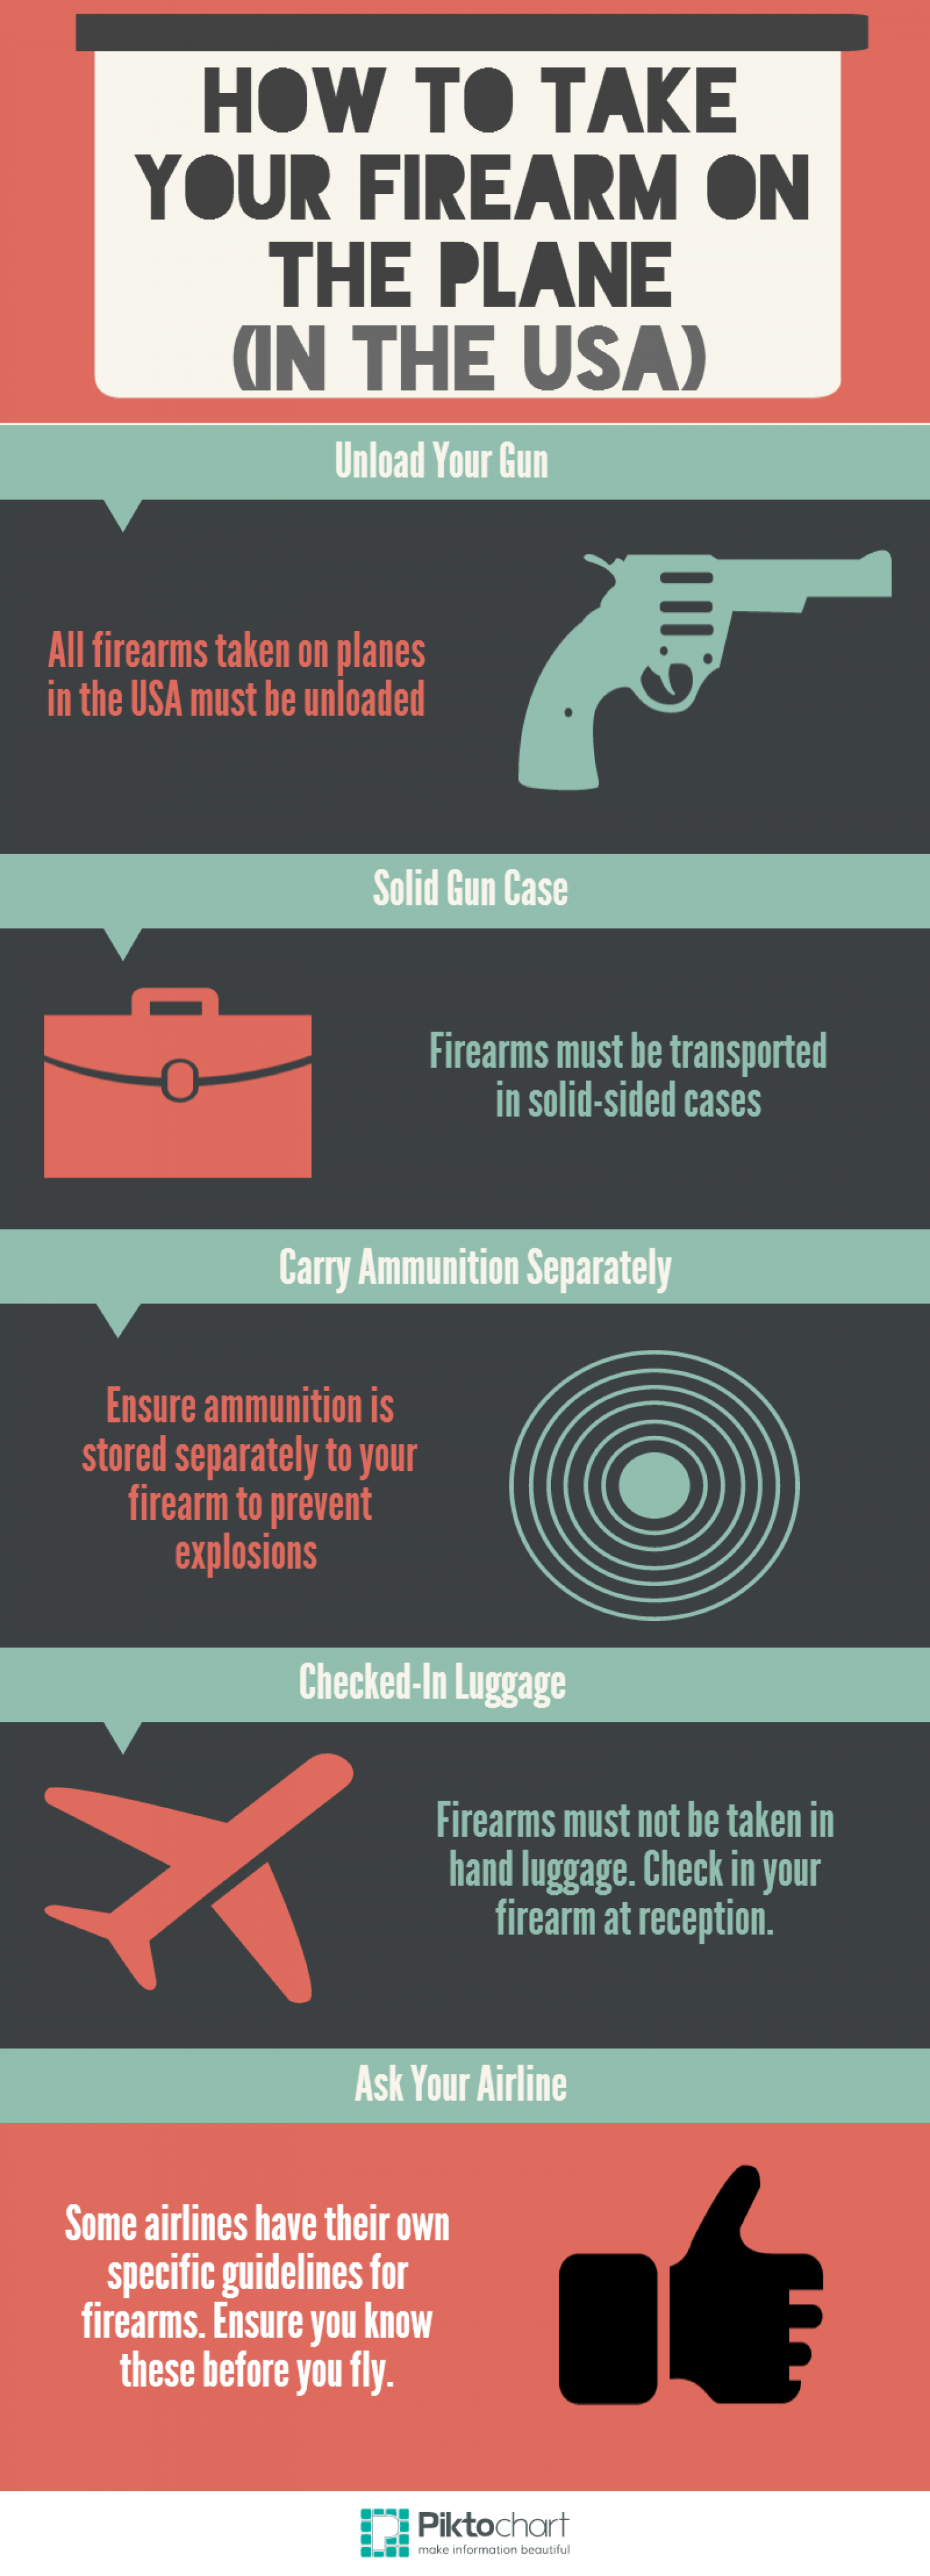 How To Transport Your Firearm On The Plane Infographic